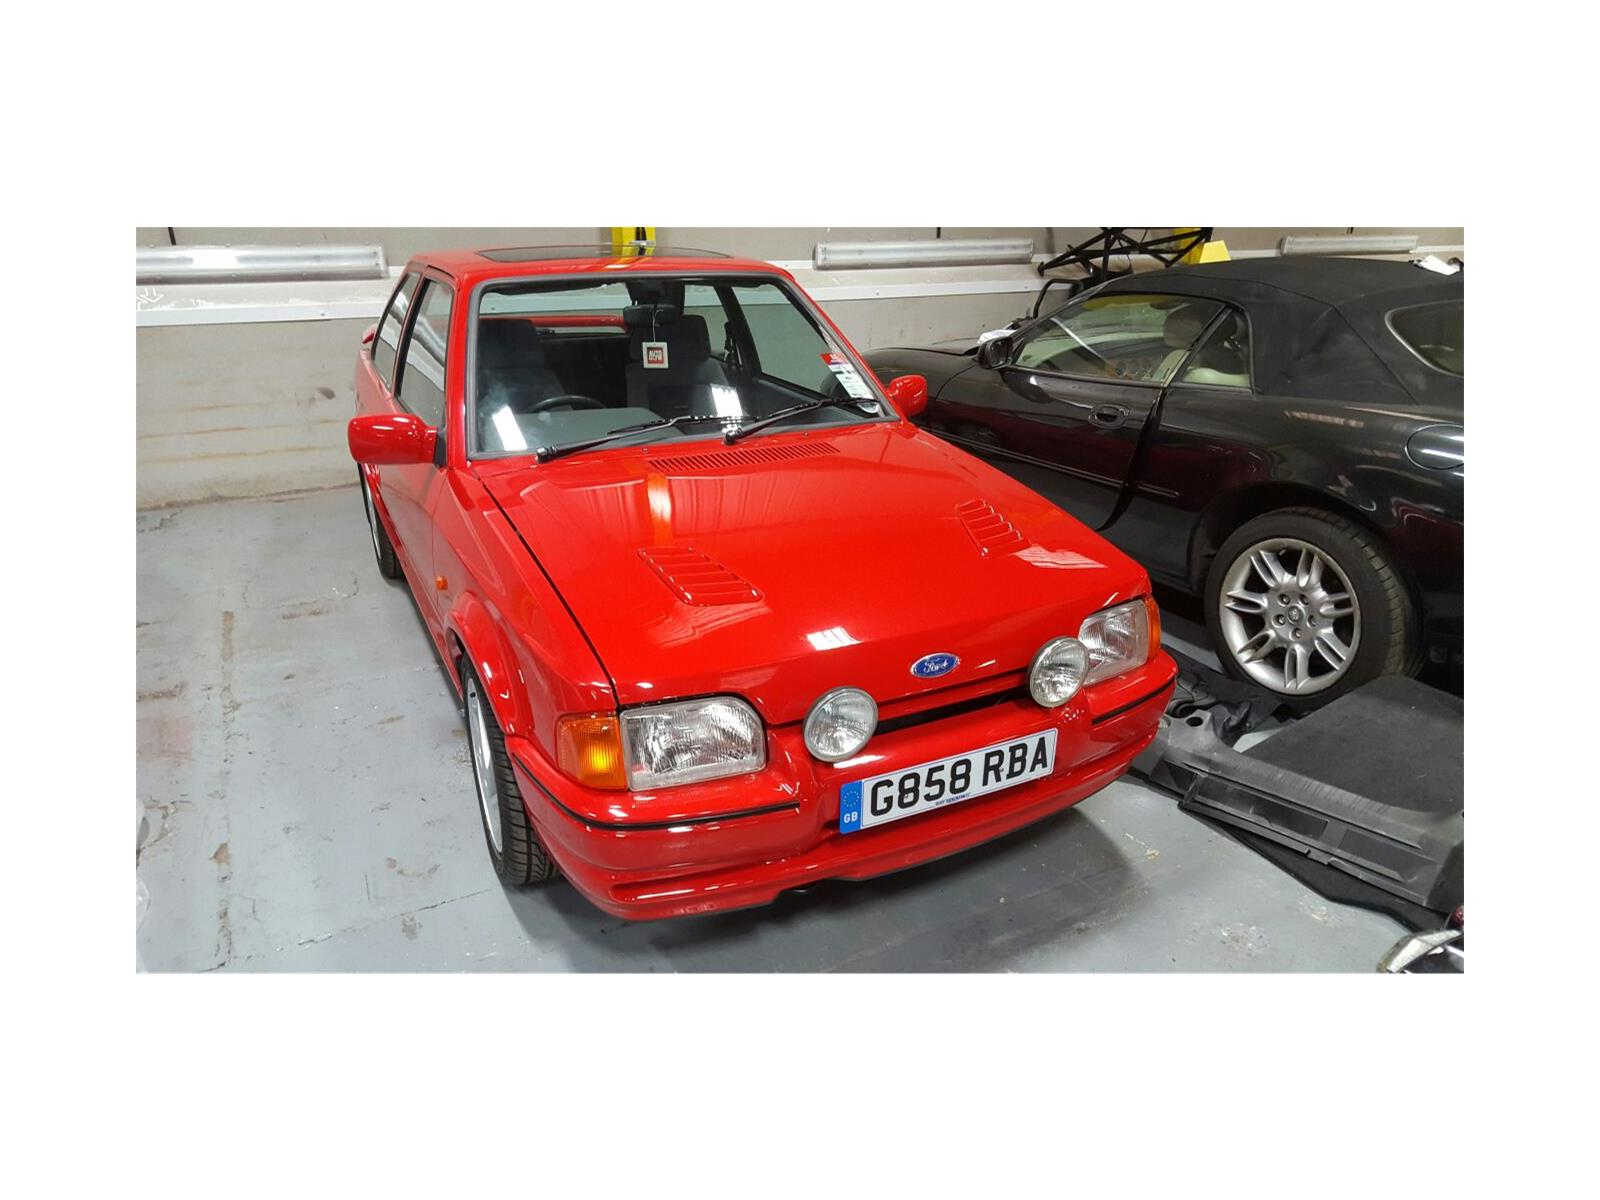 Ford Escort 1986 To 1990 3 Door Hatchback